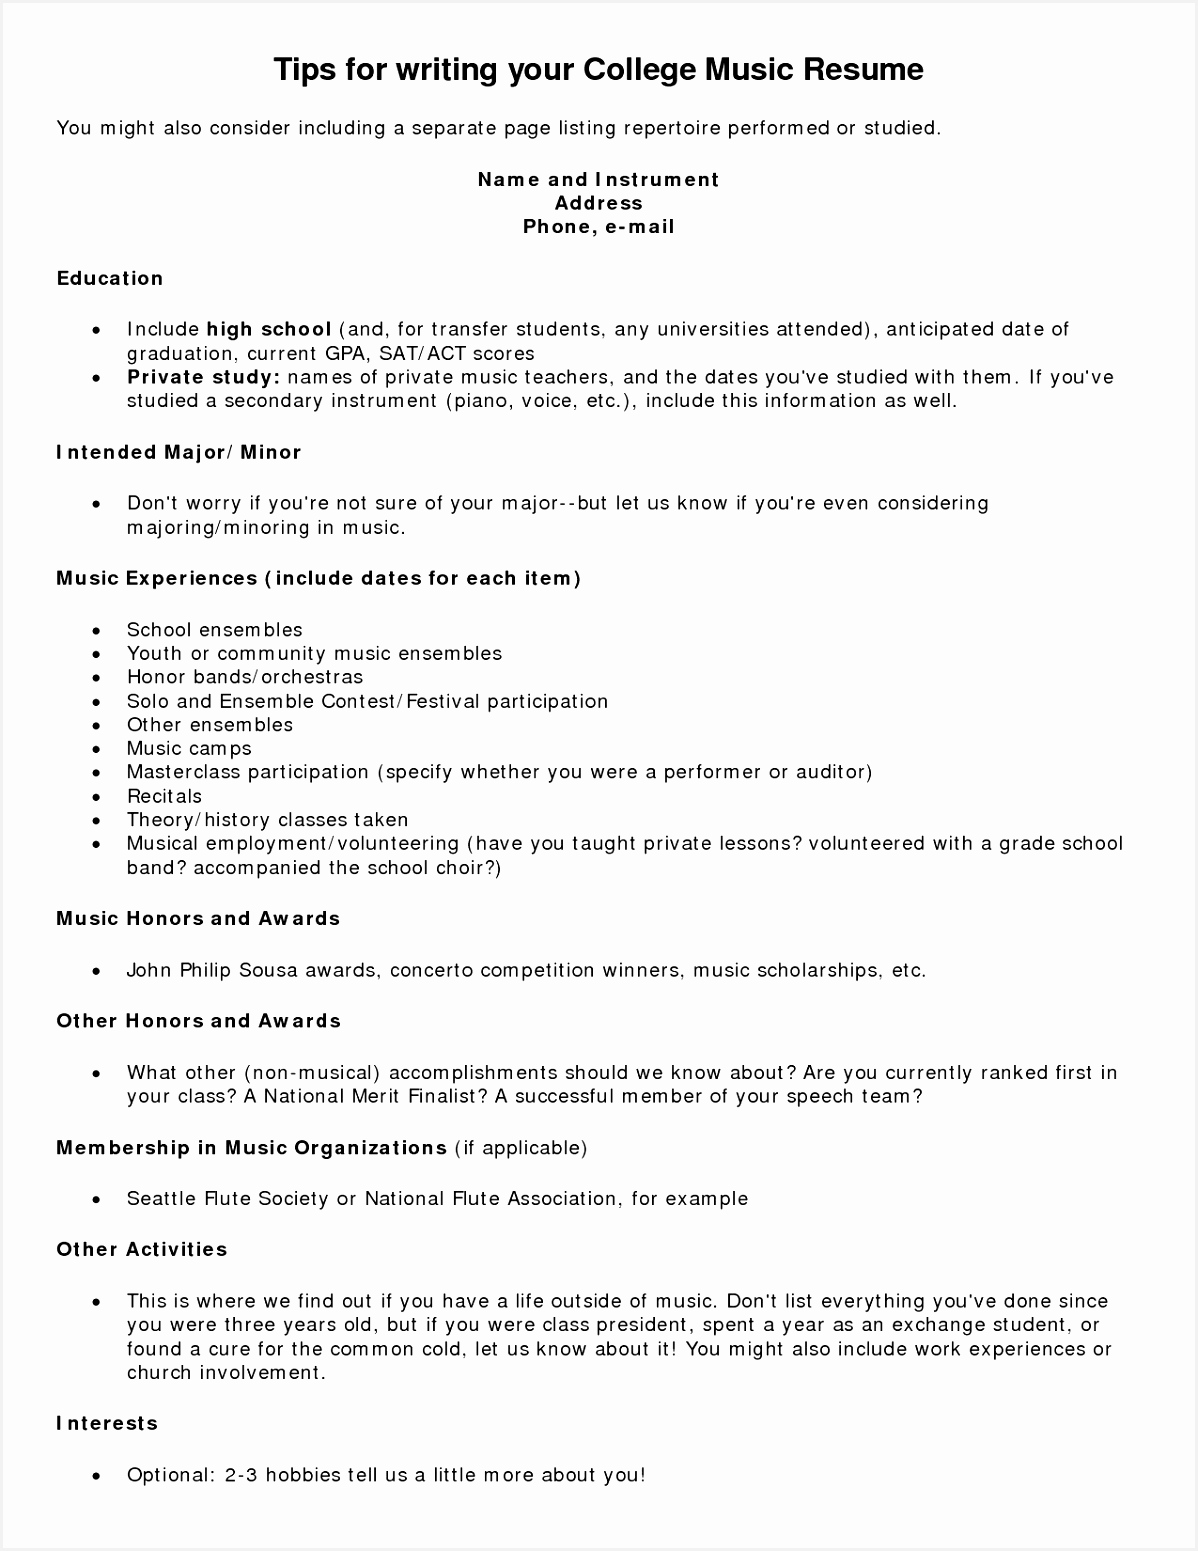 Cover Letter Template for Teenager Cover Letter for Teenager New Lovely Letter Template Fresh Resume 155111984mHin